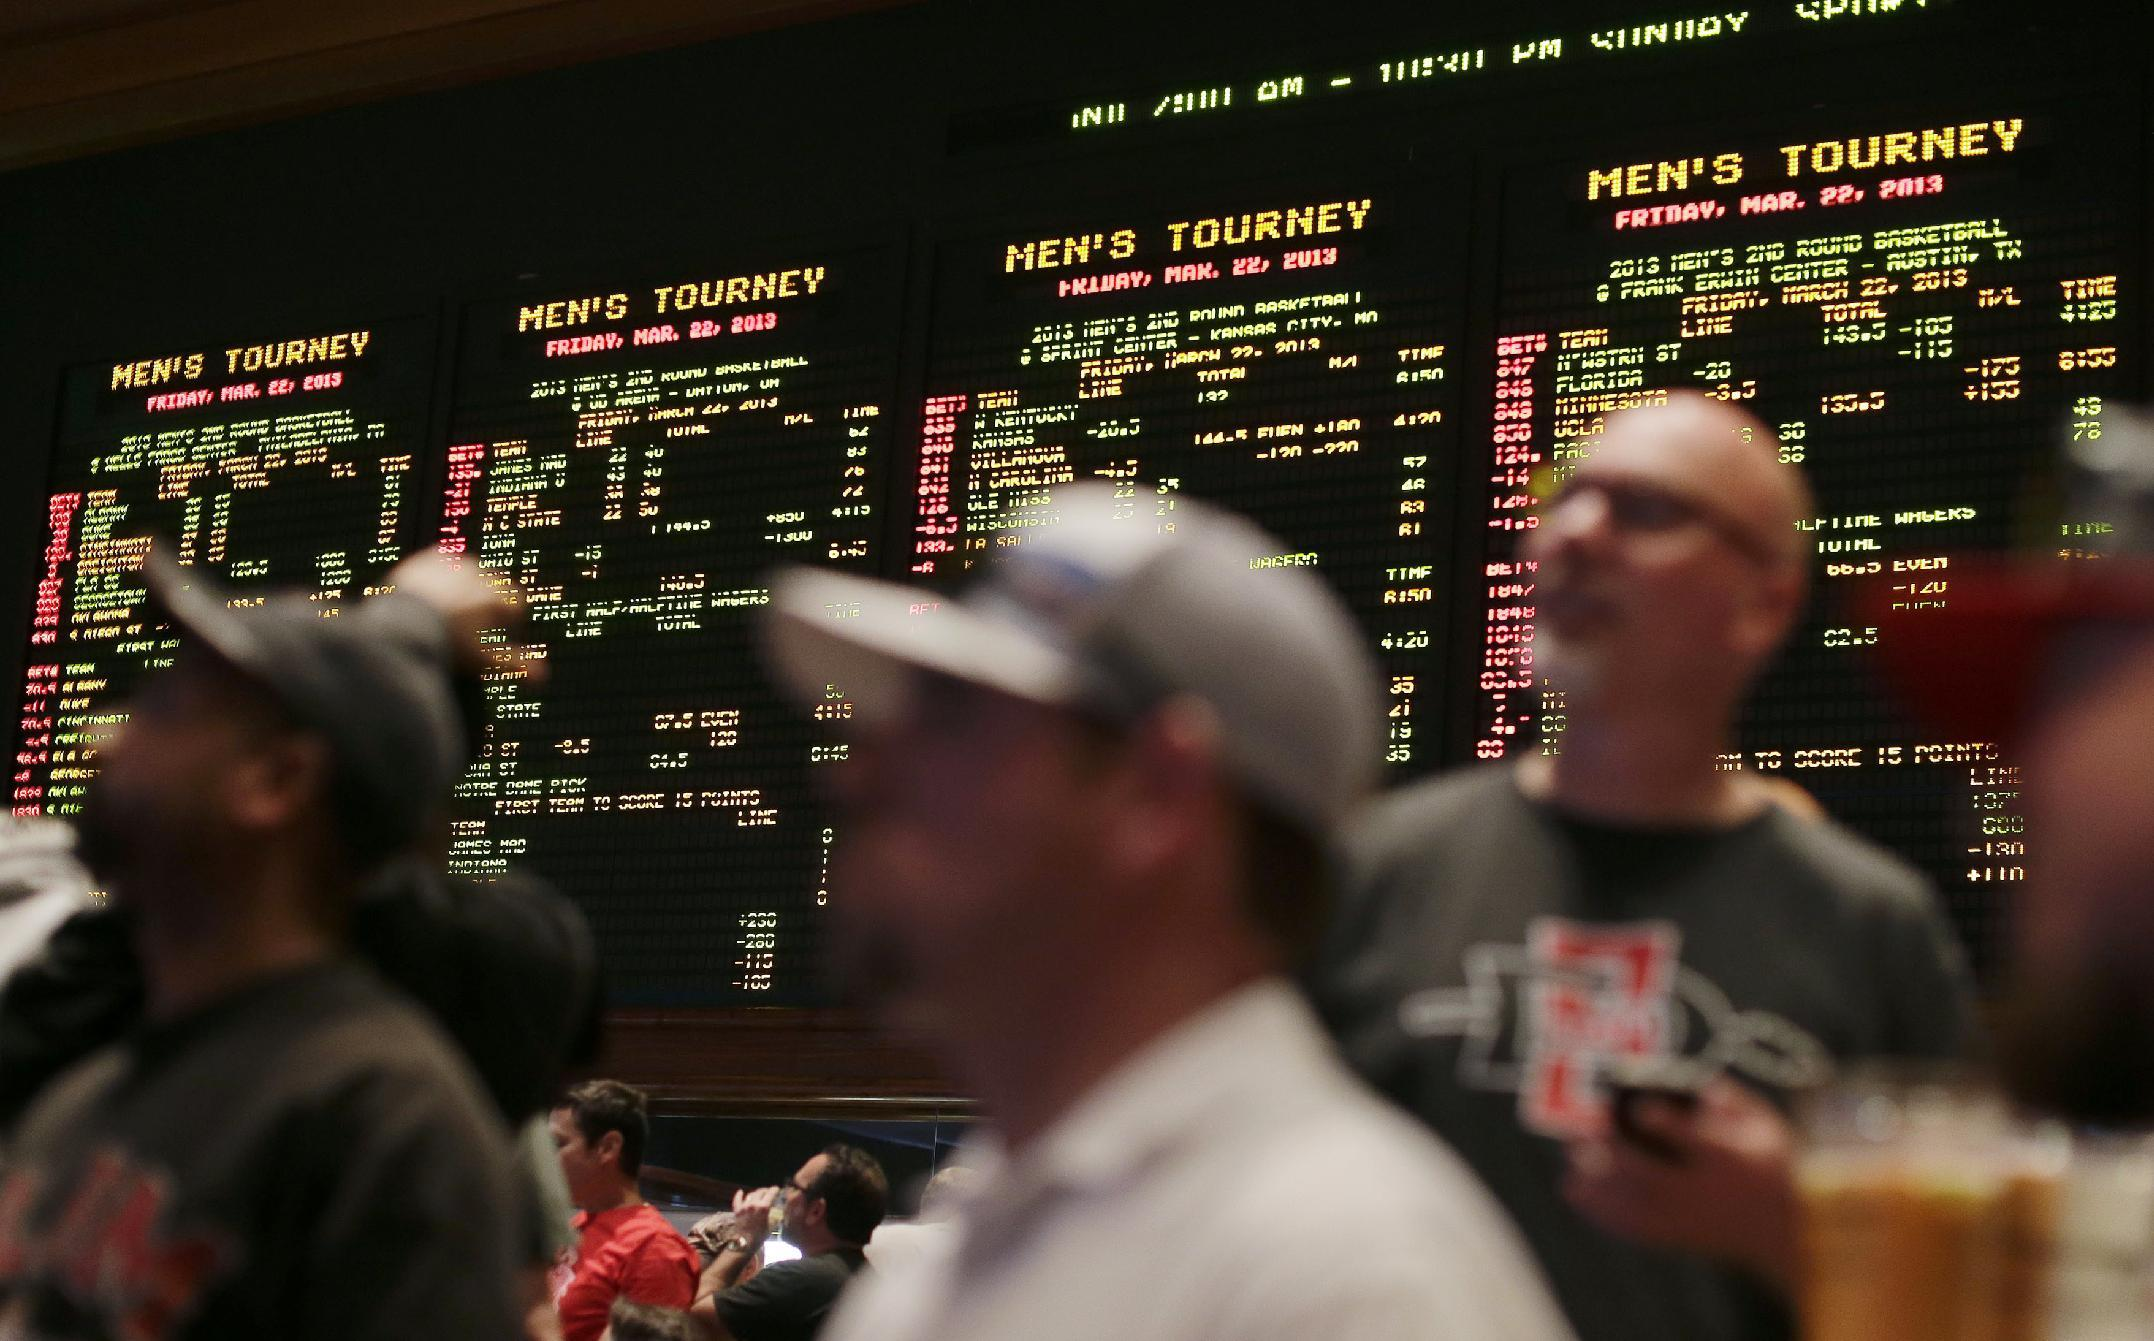 Nevada gambling regulators sign off on Olympic betting